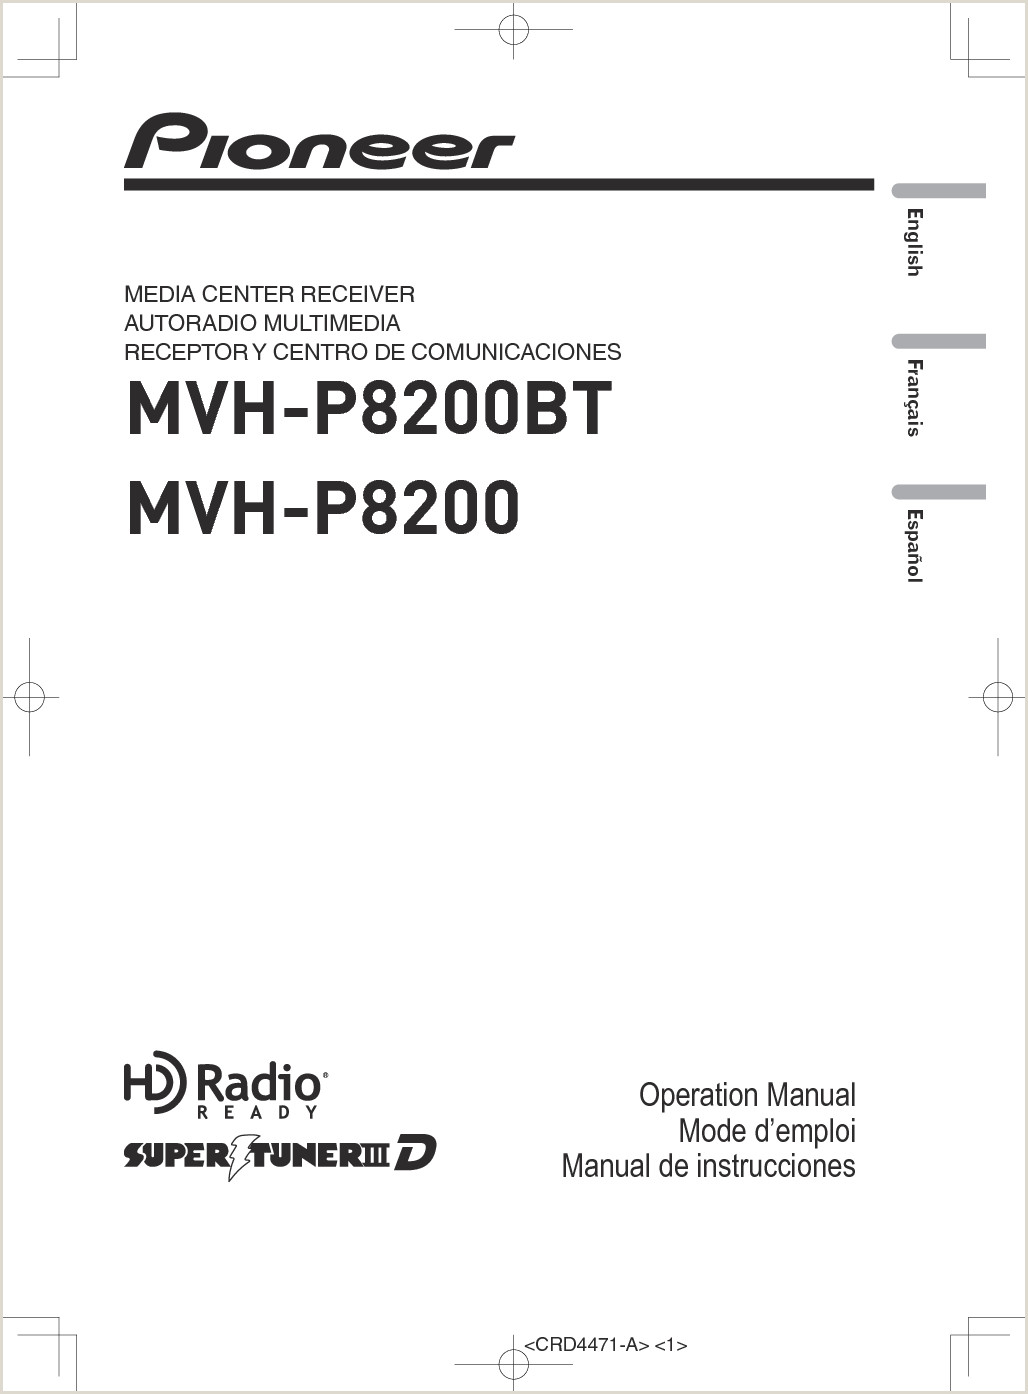 K029 Media Center Receiver User Manual Pioneer